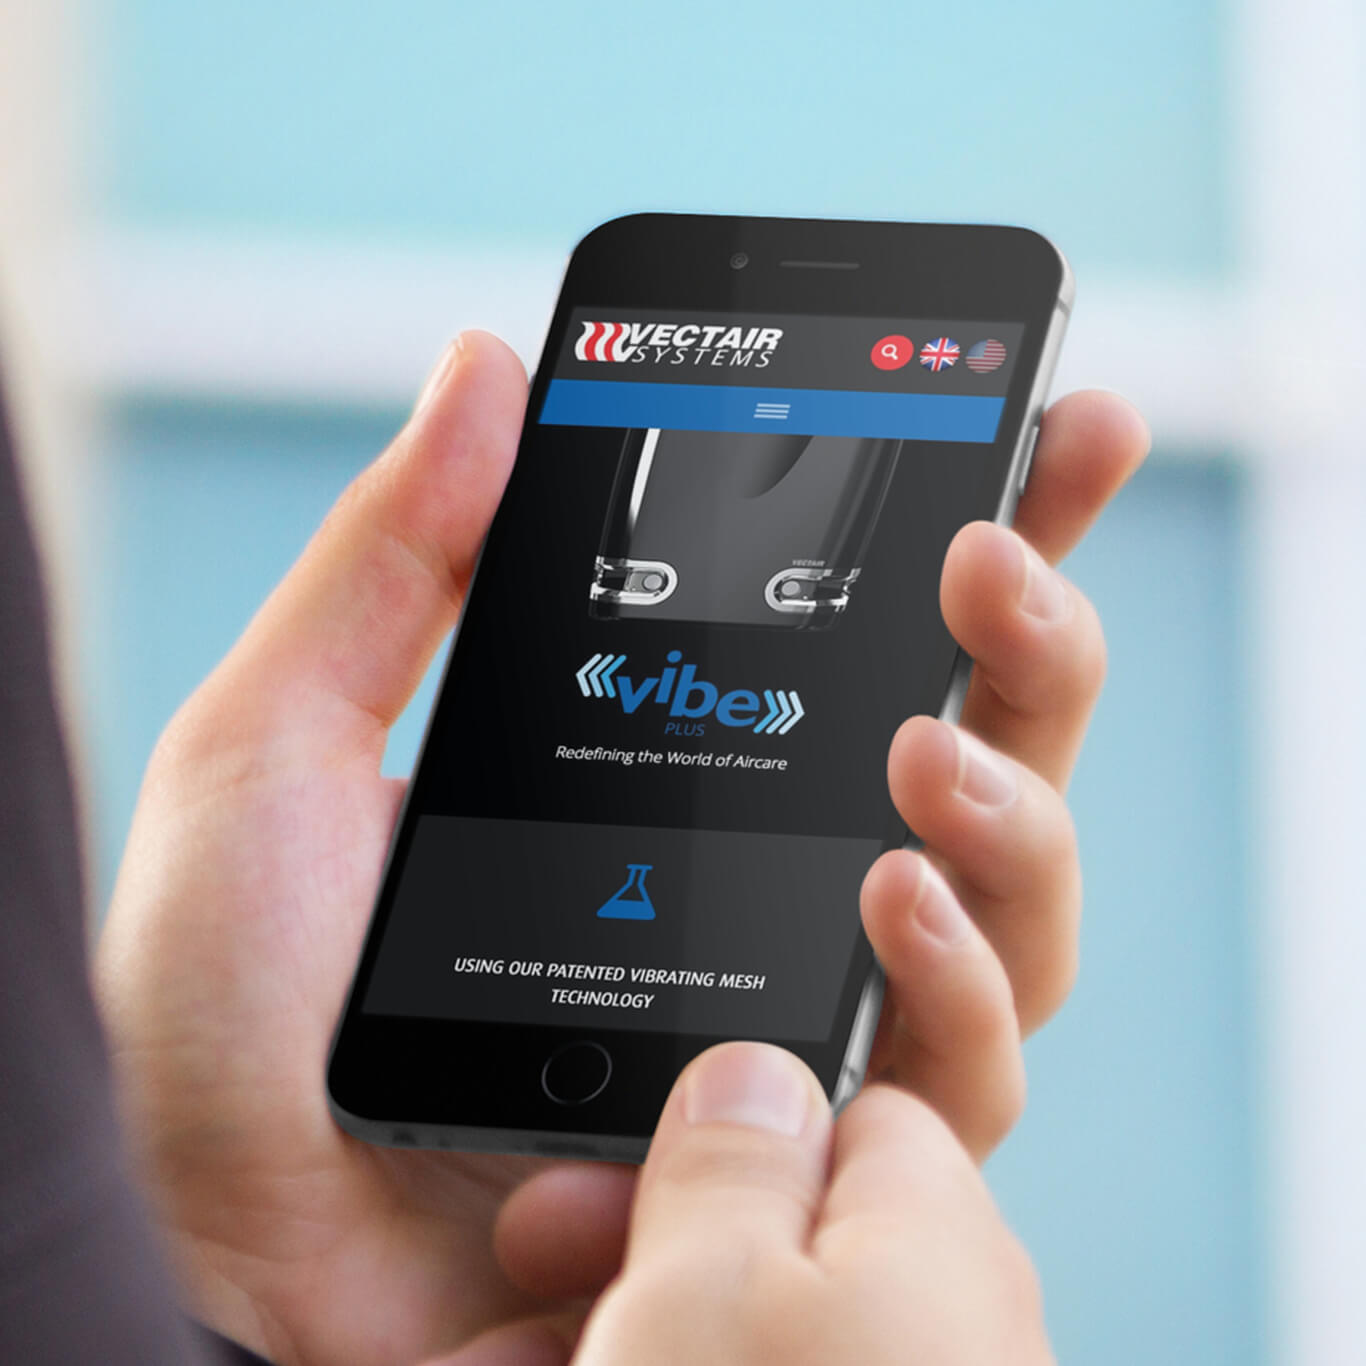 New Vectair VIBE Microsite hompepage on mobile device